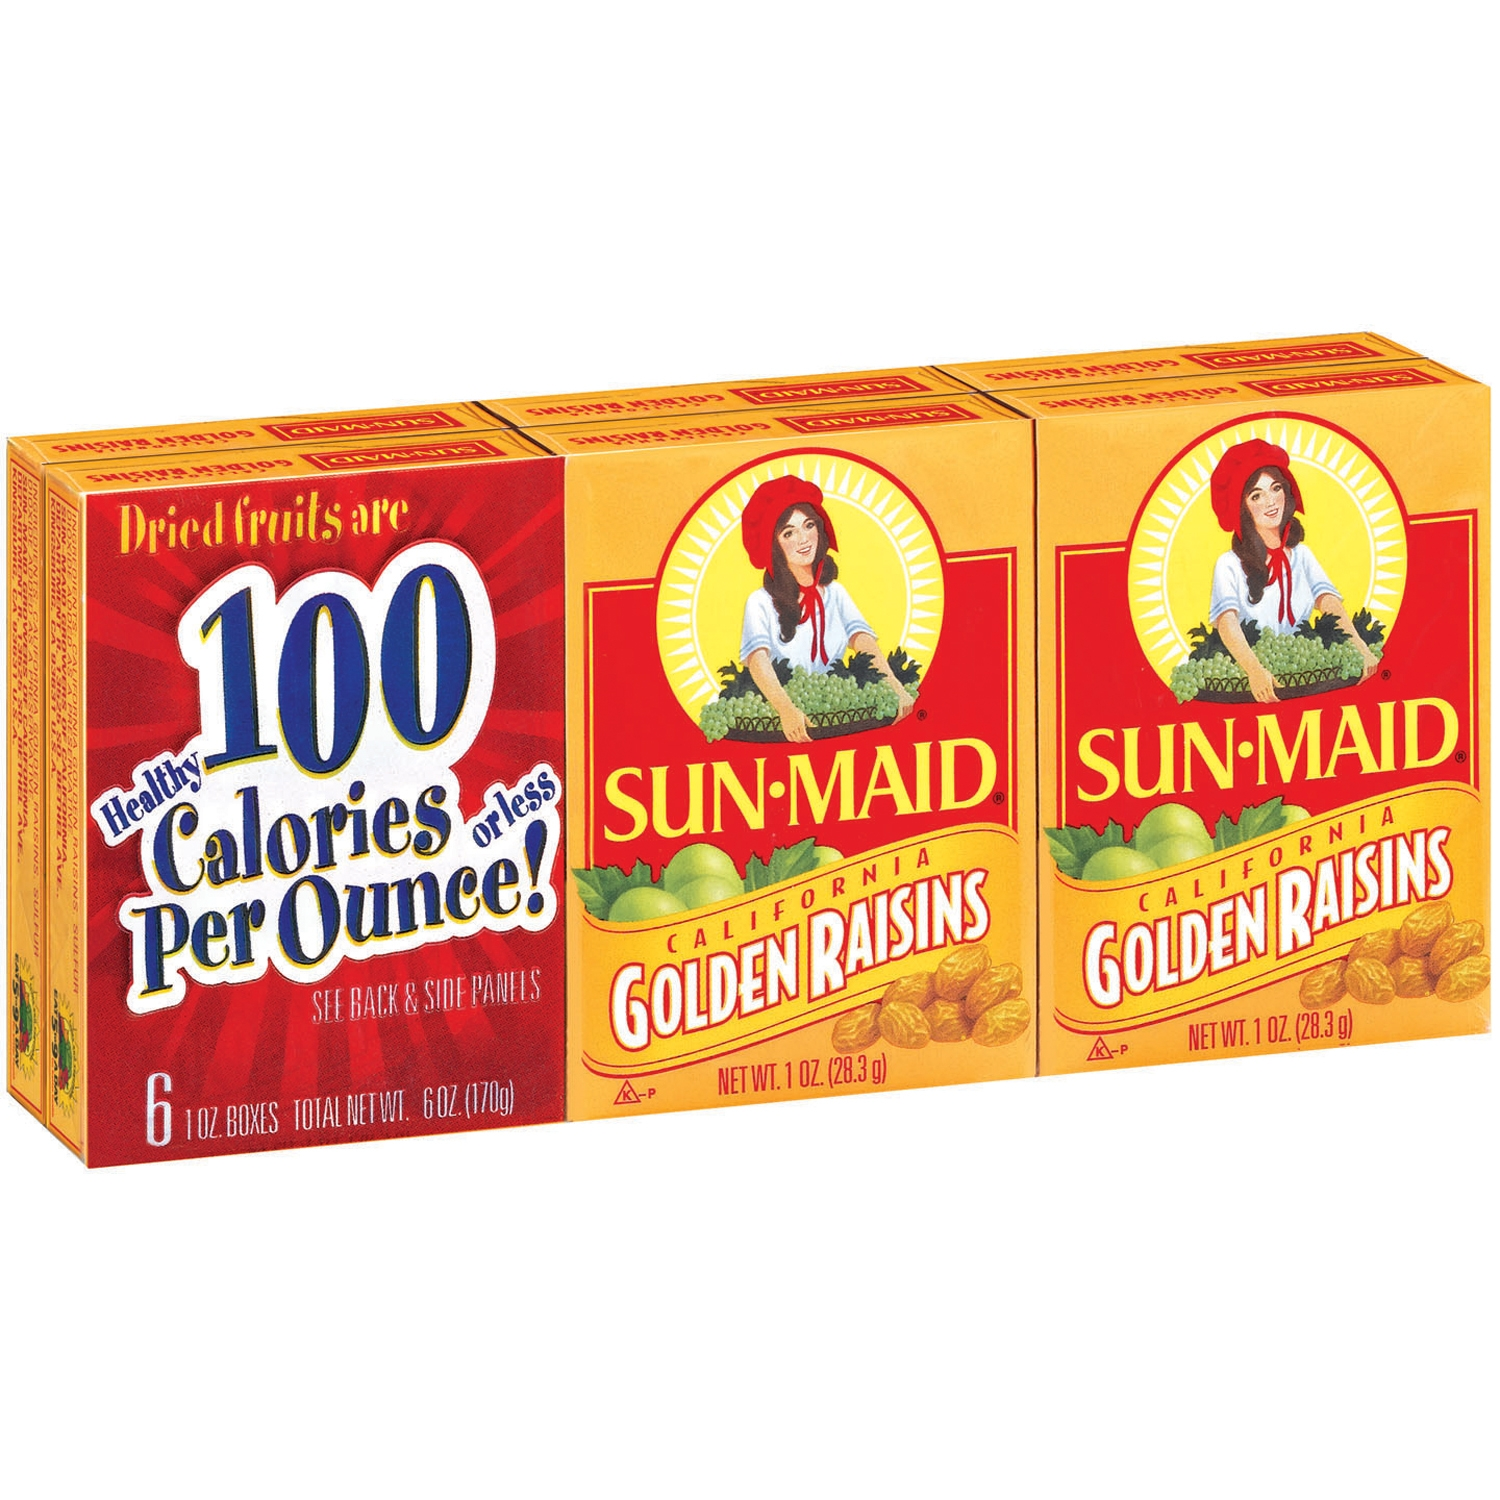 Sun-Maid® Golden Raisins 6-1 oz. Boxes